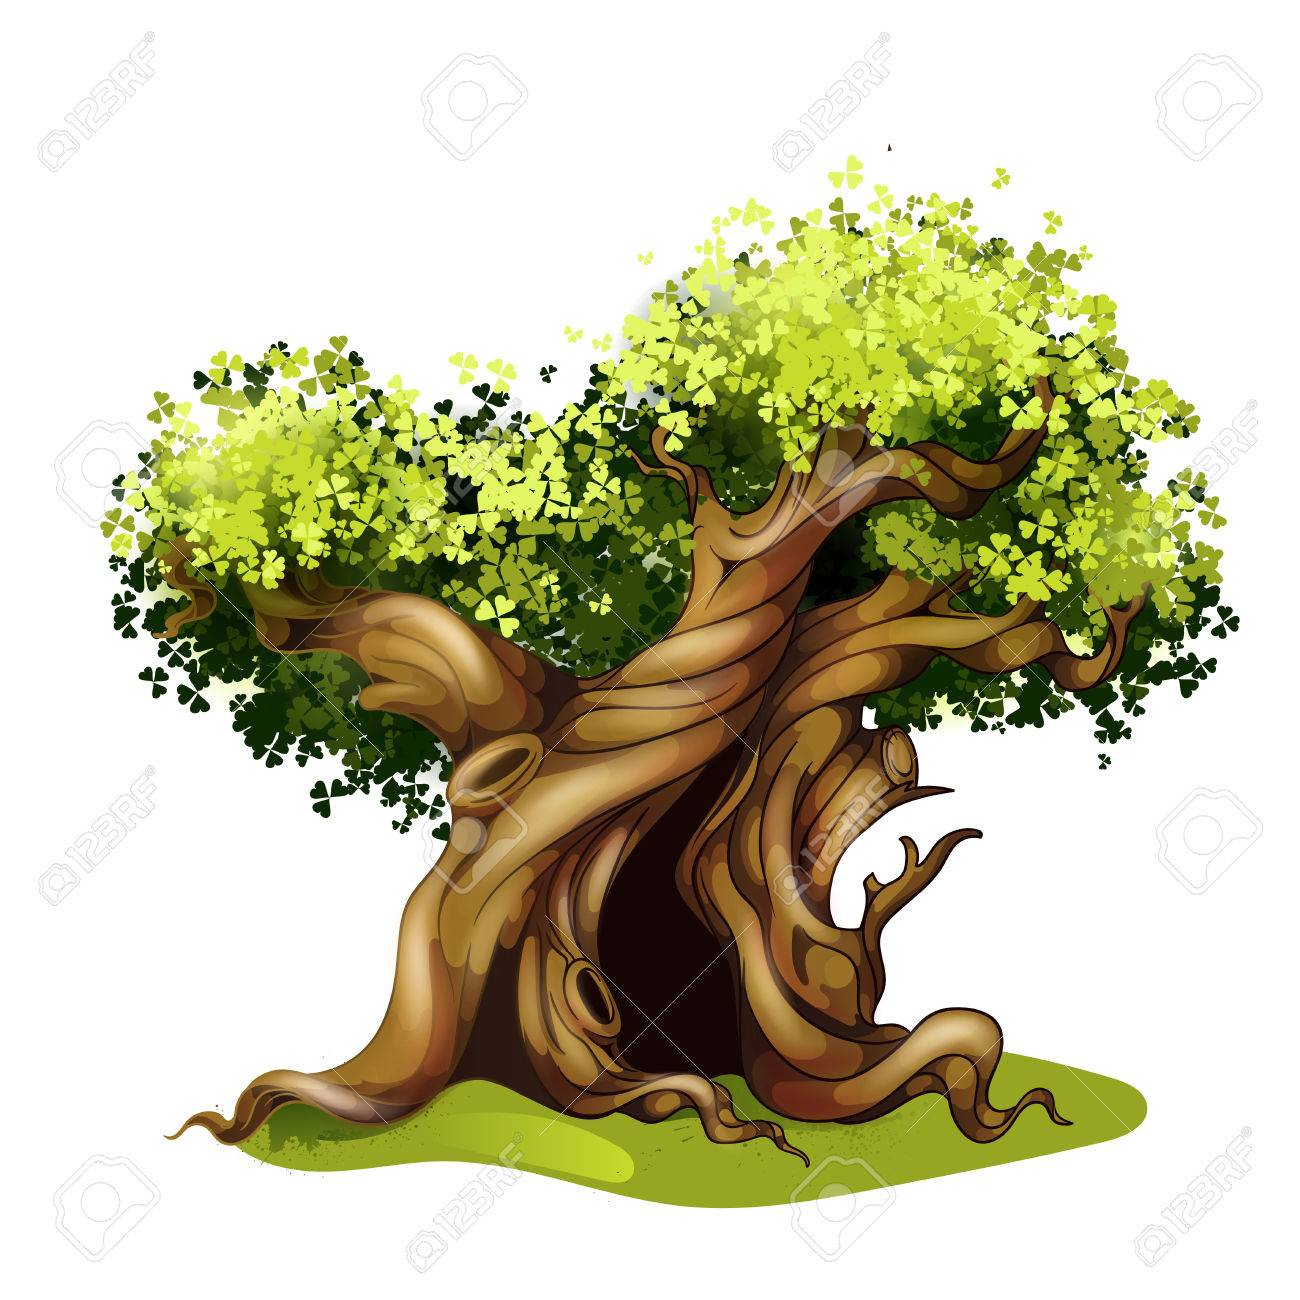 Hollow tree clipart clip stock Hollow Tree Cliparts - Making-The-Web.com clip stock